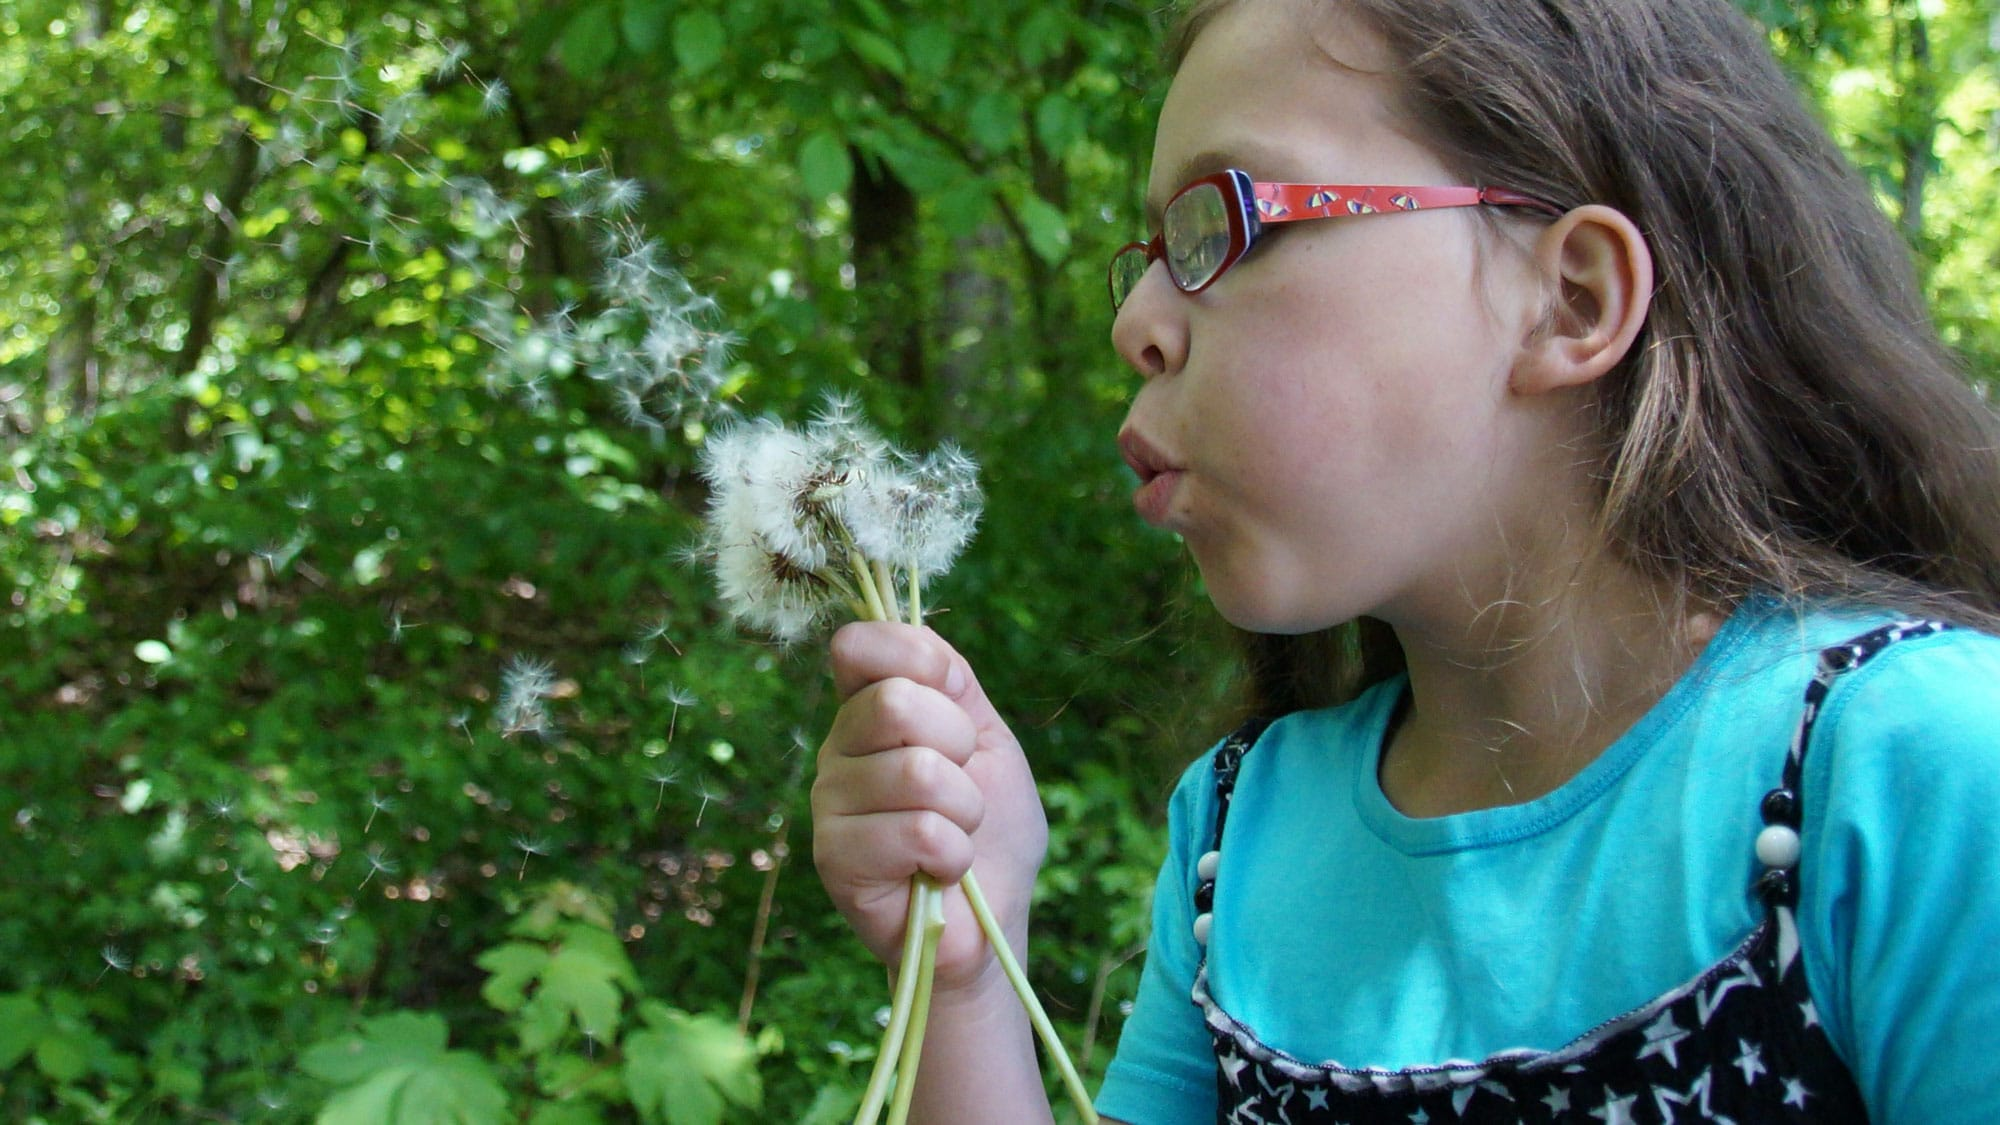 Tackling child behaviour problems effectively requires better understanding of differences between an 'orchid' child and a 'dandelion' child